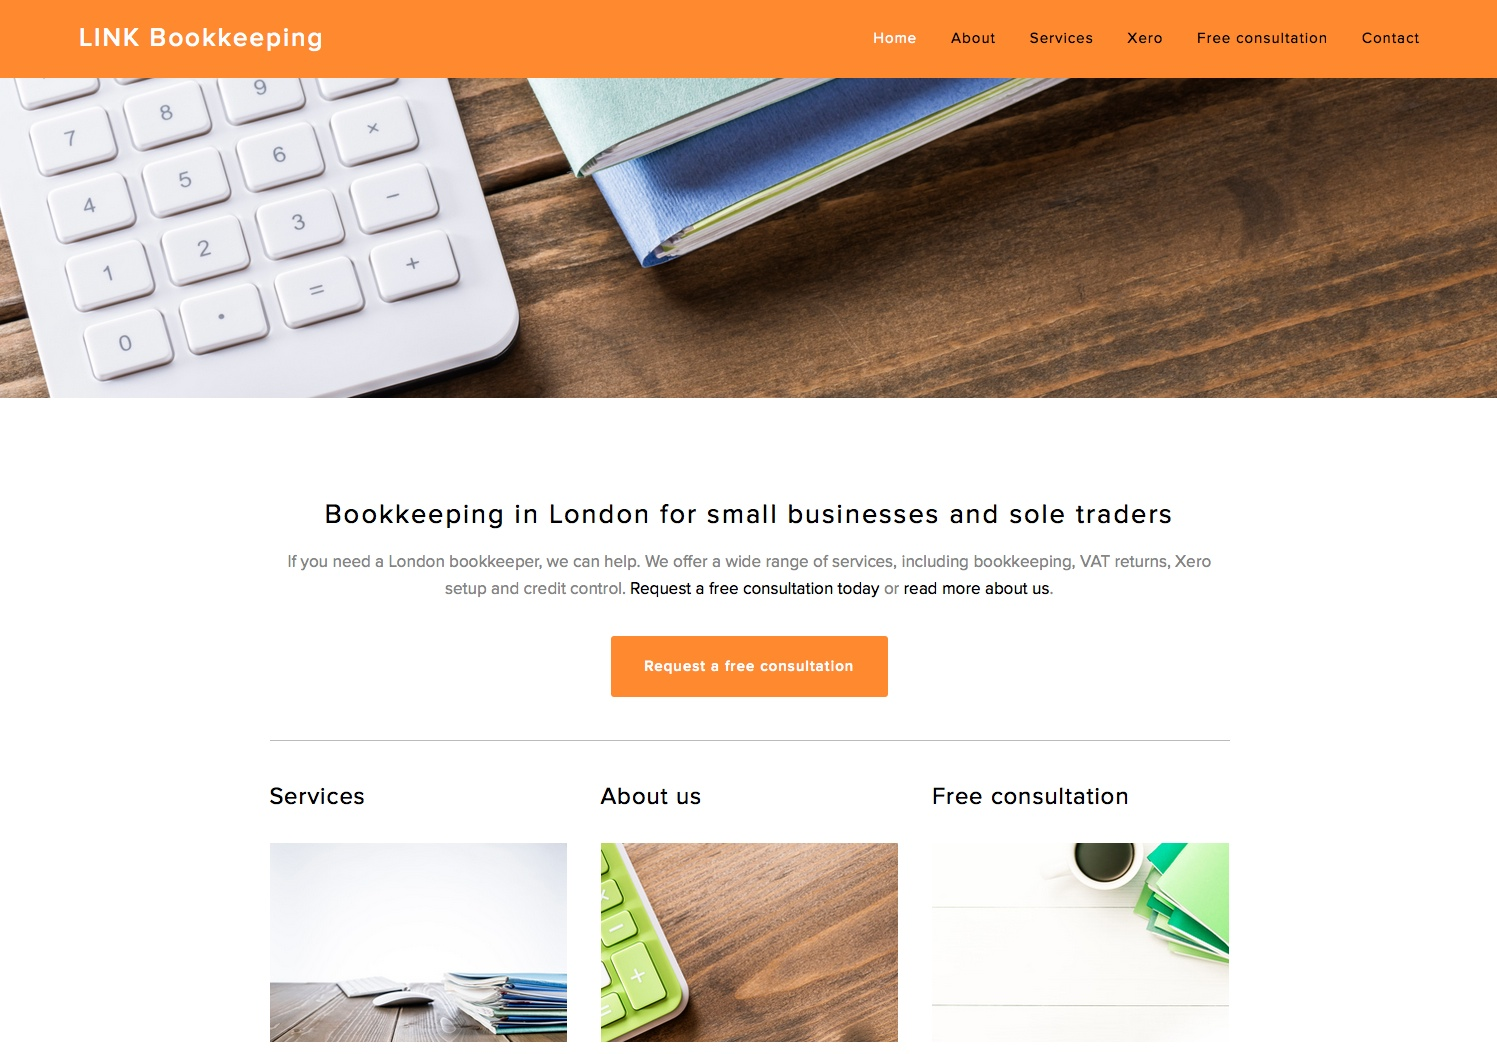 Link Bookkeeping